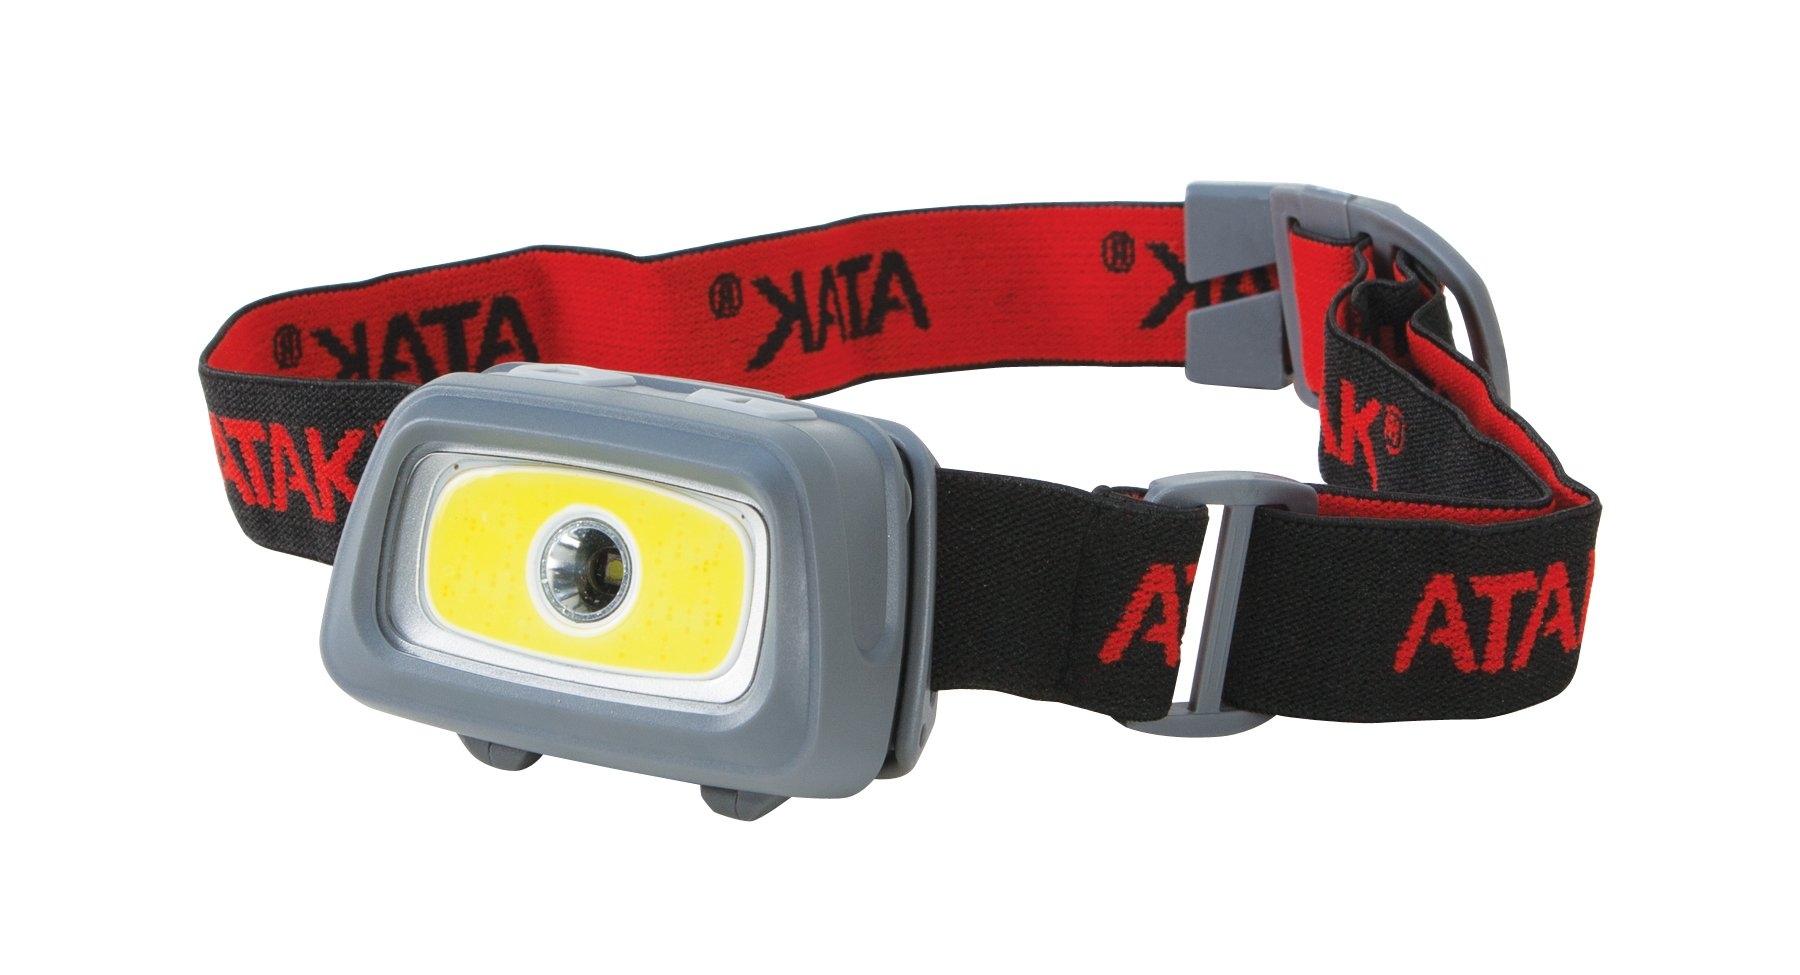 ATAK Model 372-300 Lumen Multi-Function COB LED Headlamp (High, Low, Green, Red and Strobe Settings) by Performance Tool (Image #2)